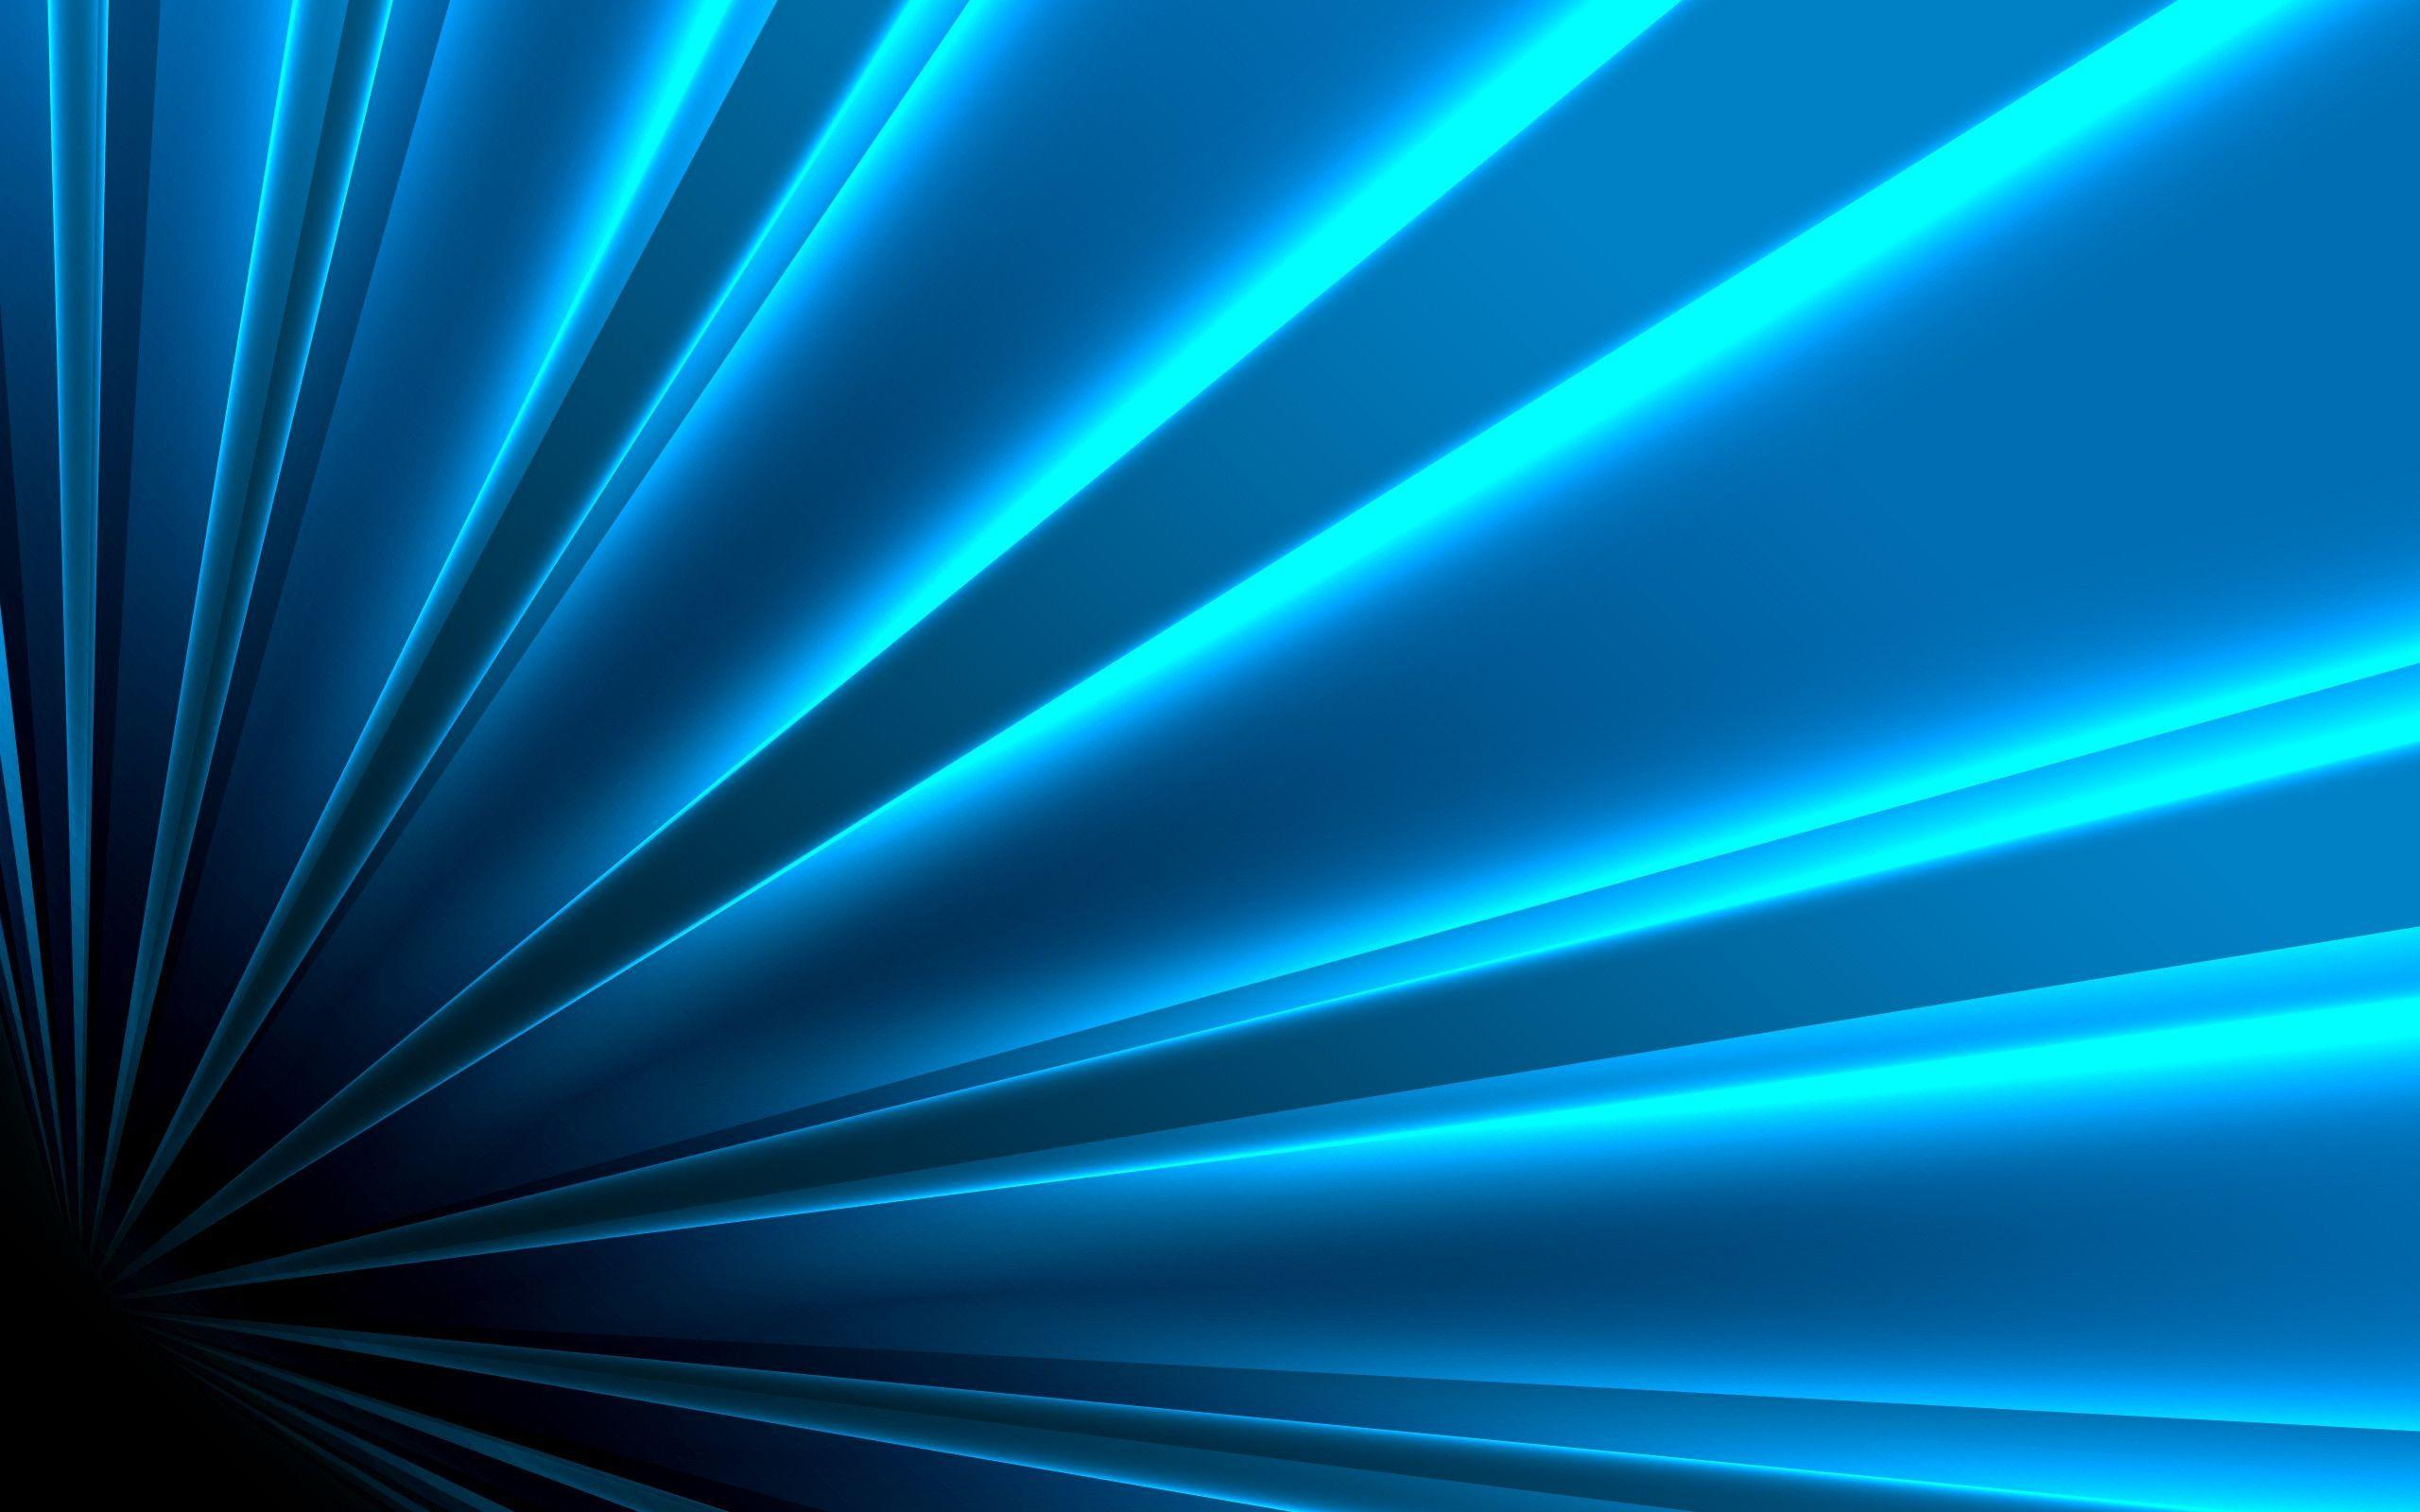 black light backgrounds - wallpaper cave